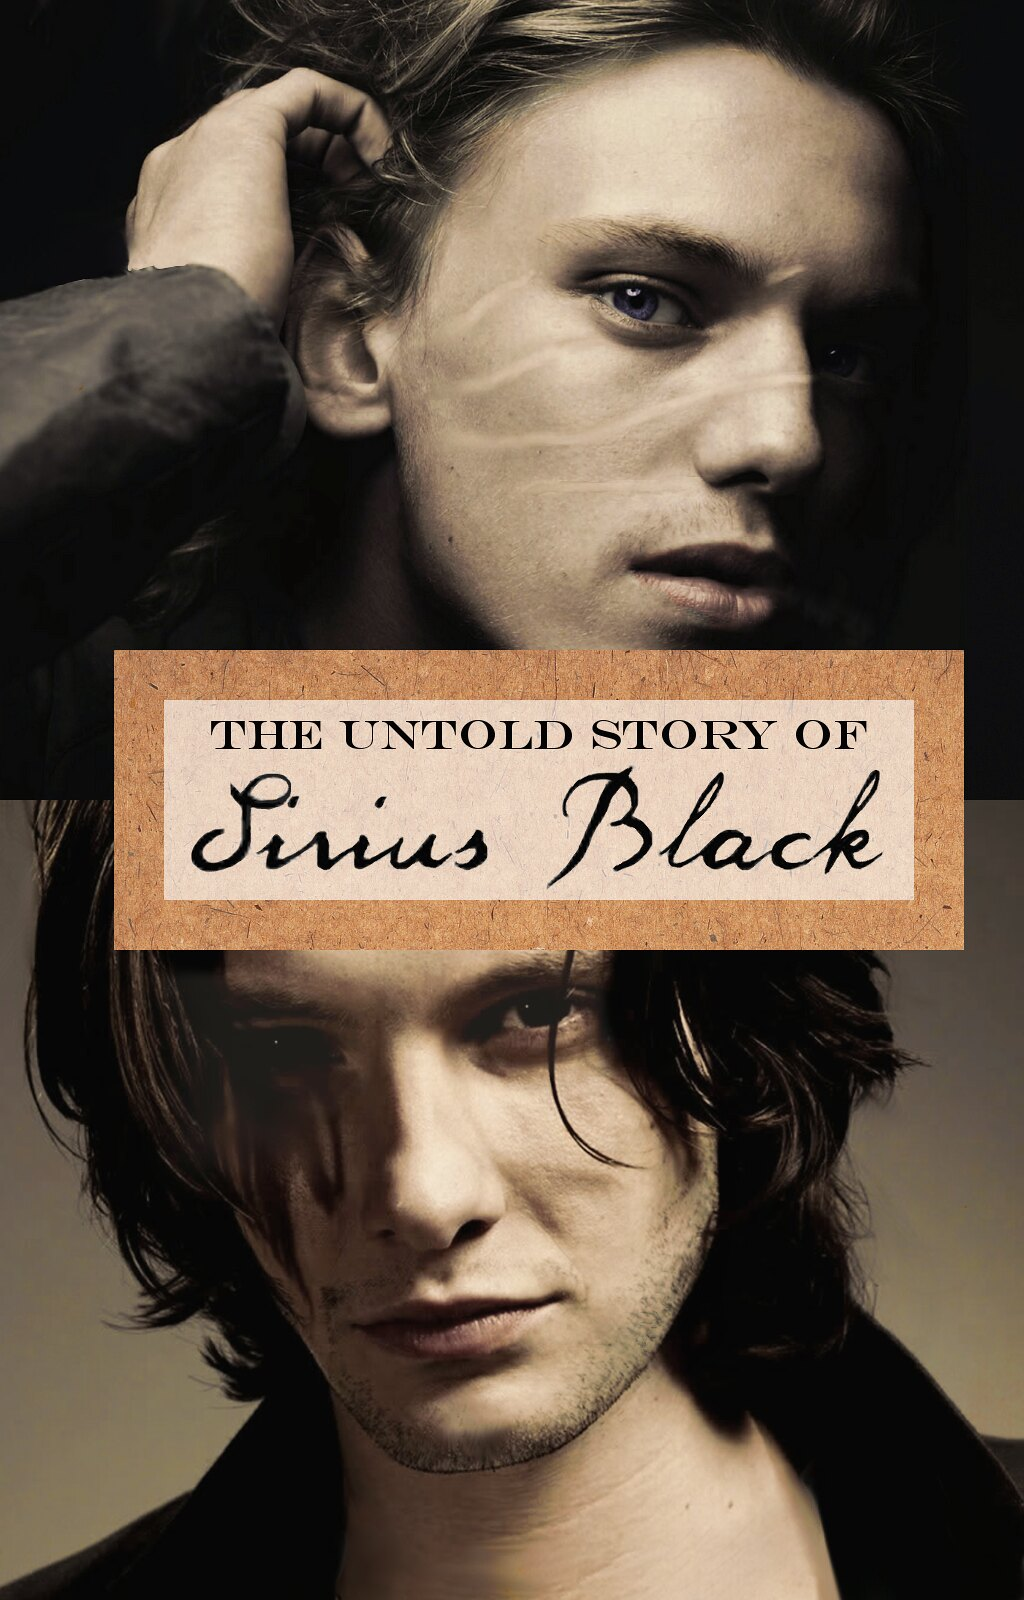 The Untold Story of Sirius Black - Chapter 1 - Katia - Harry